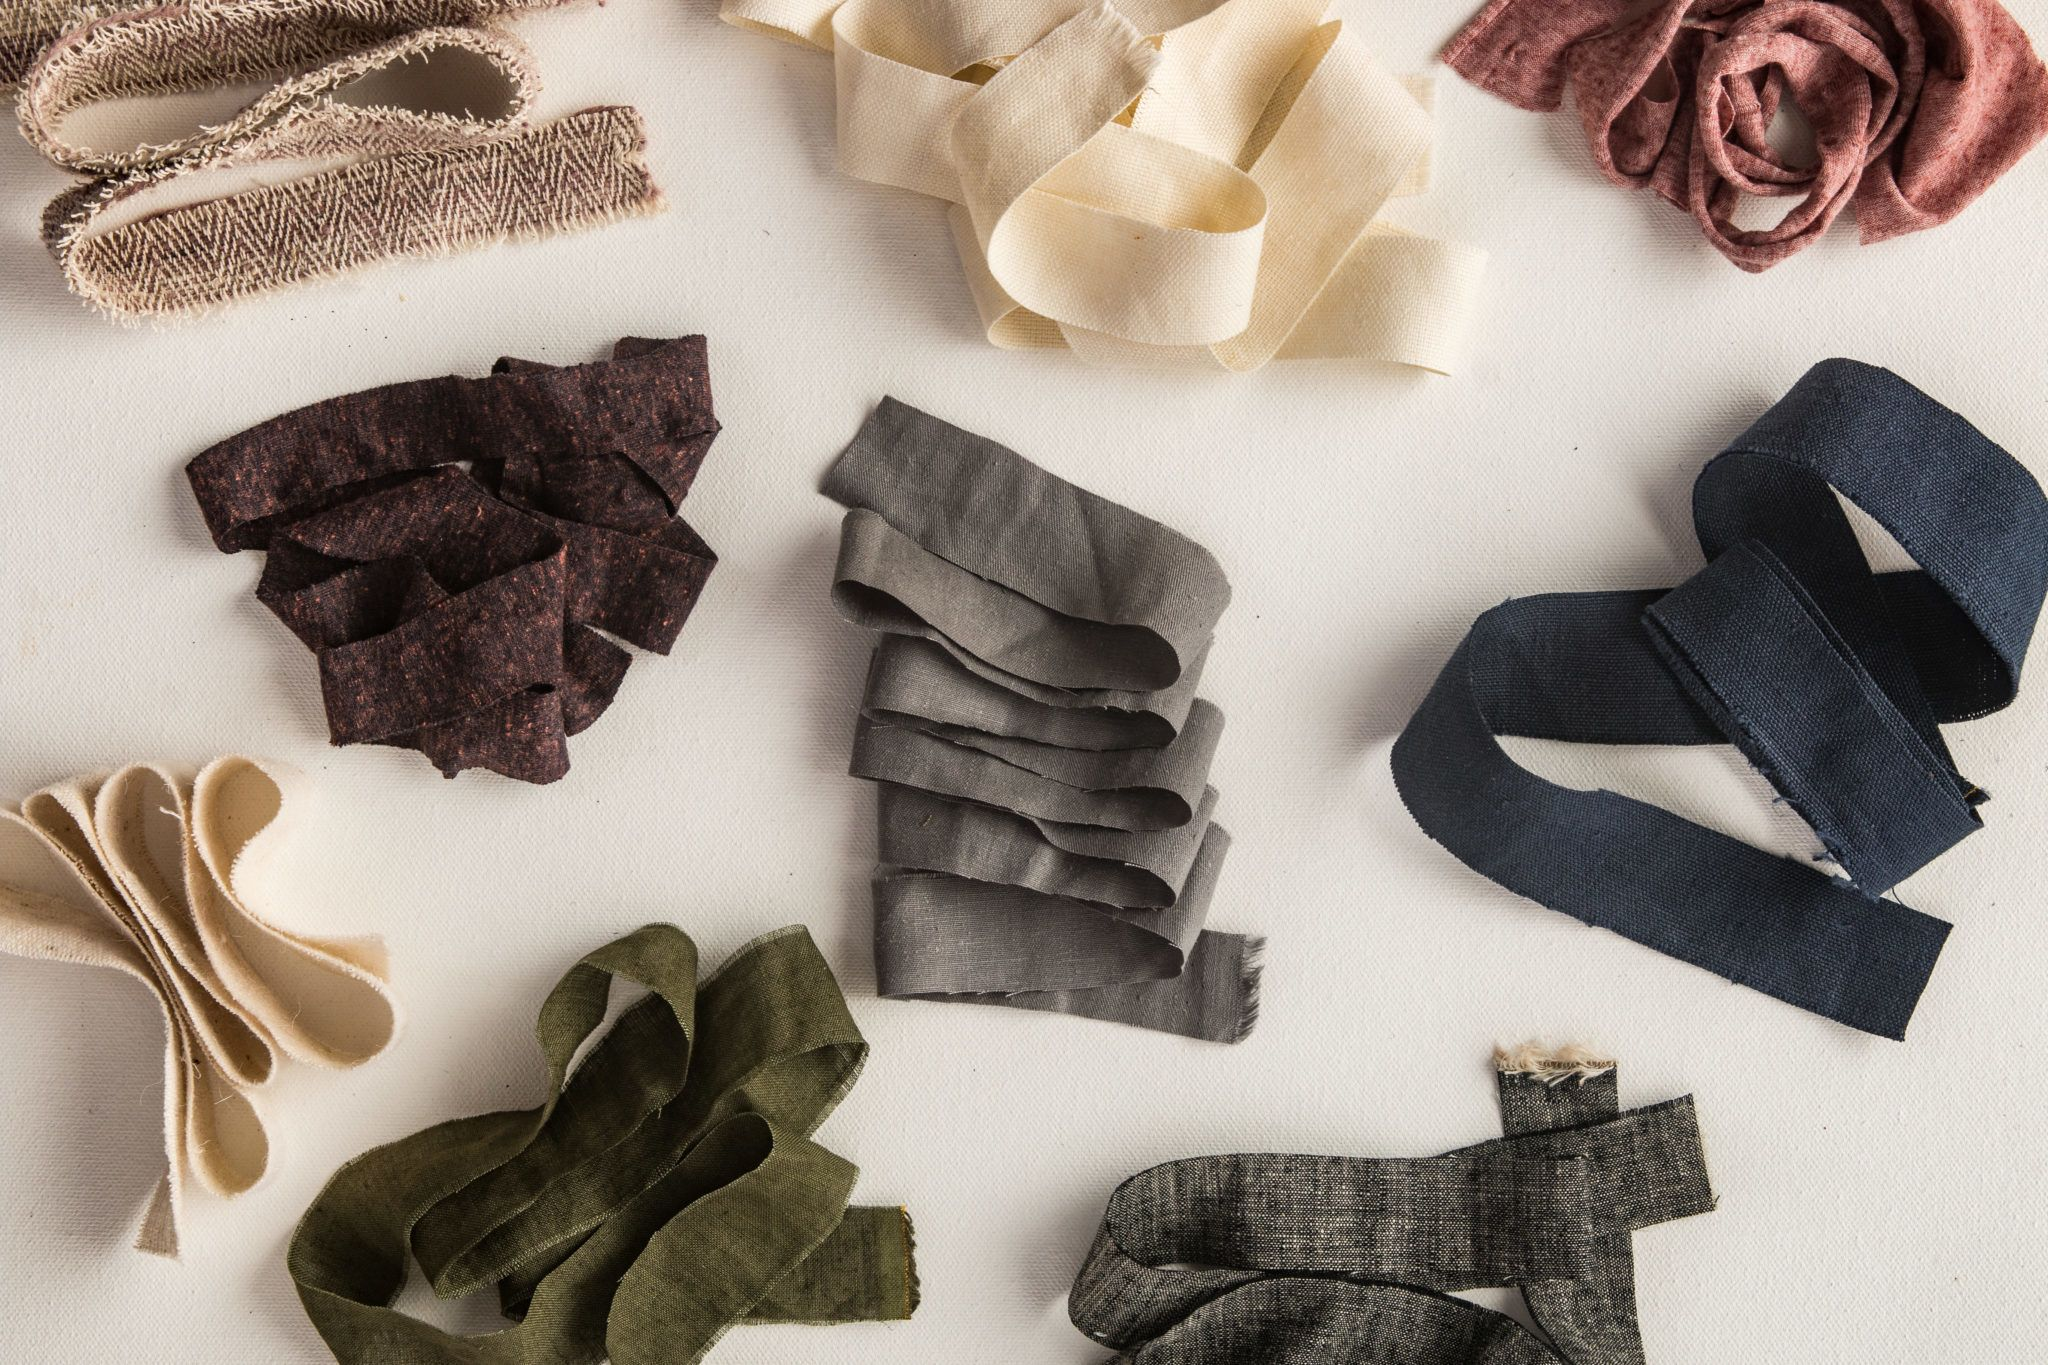 A collection of hemp fabric in a variety of colors and textures from Hemp Fabric Lab.